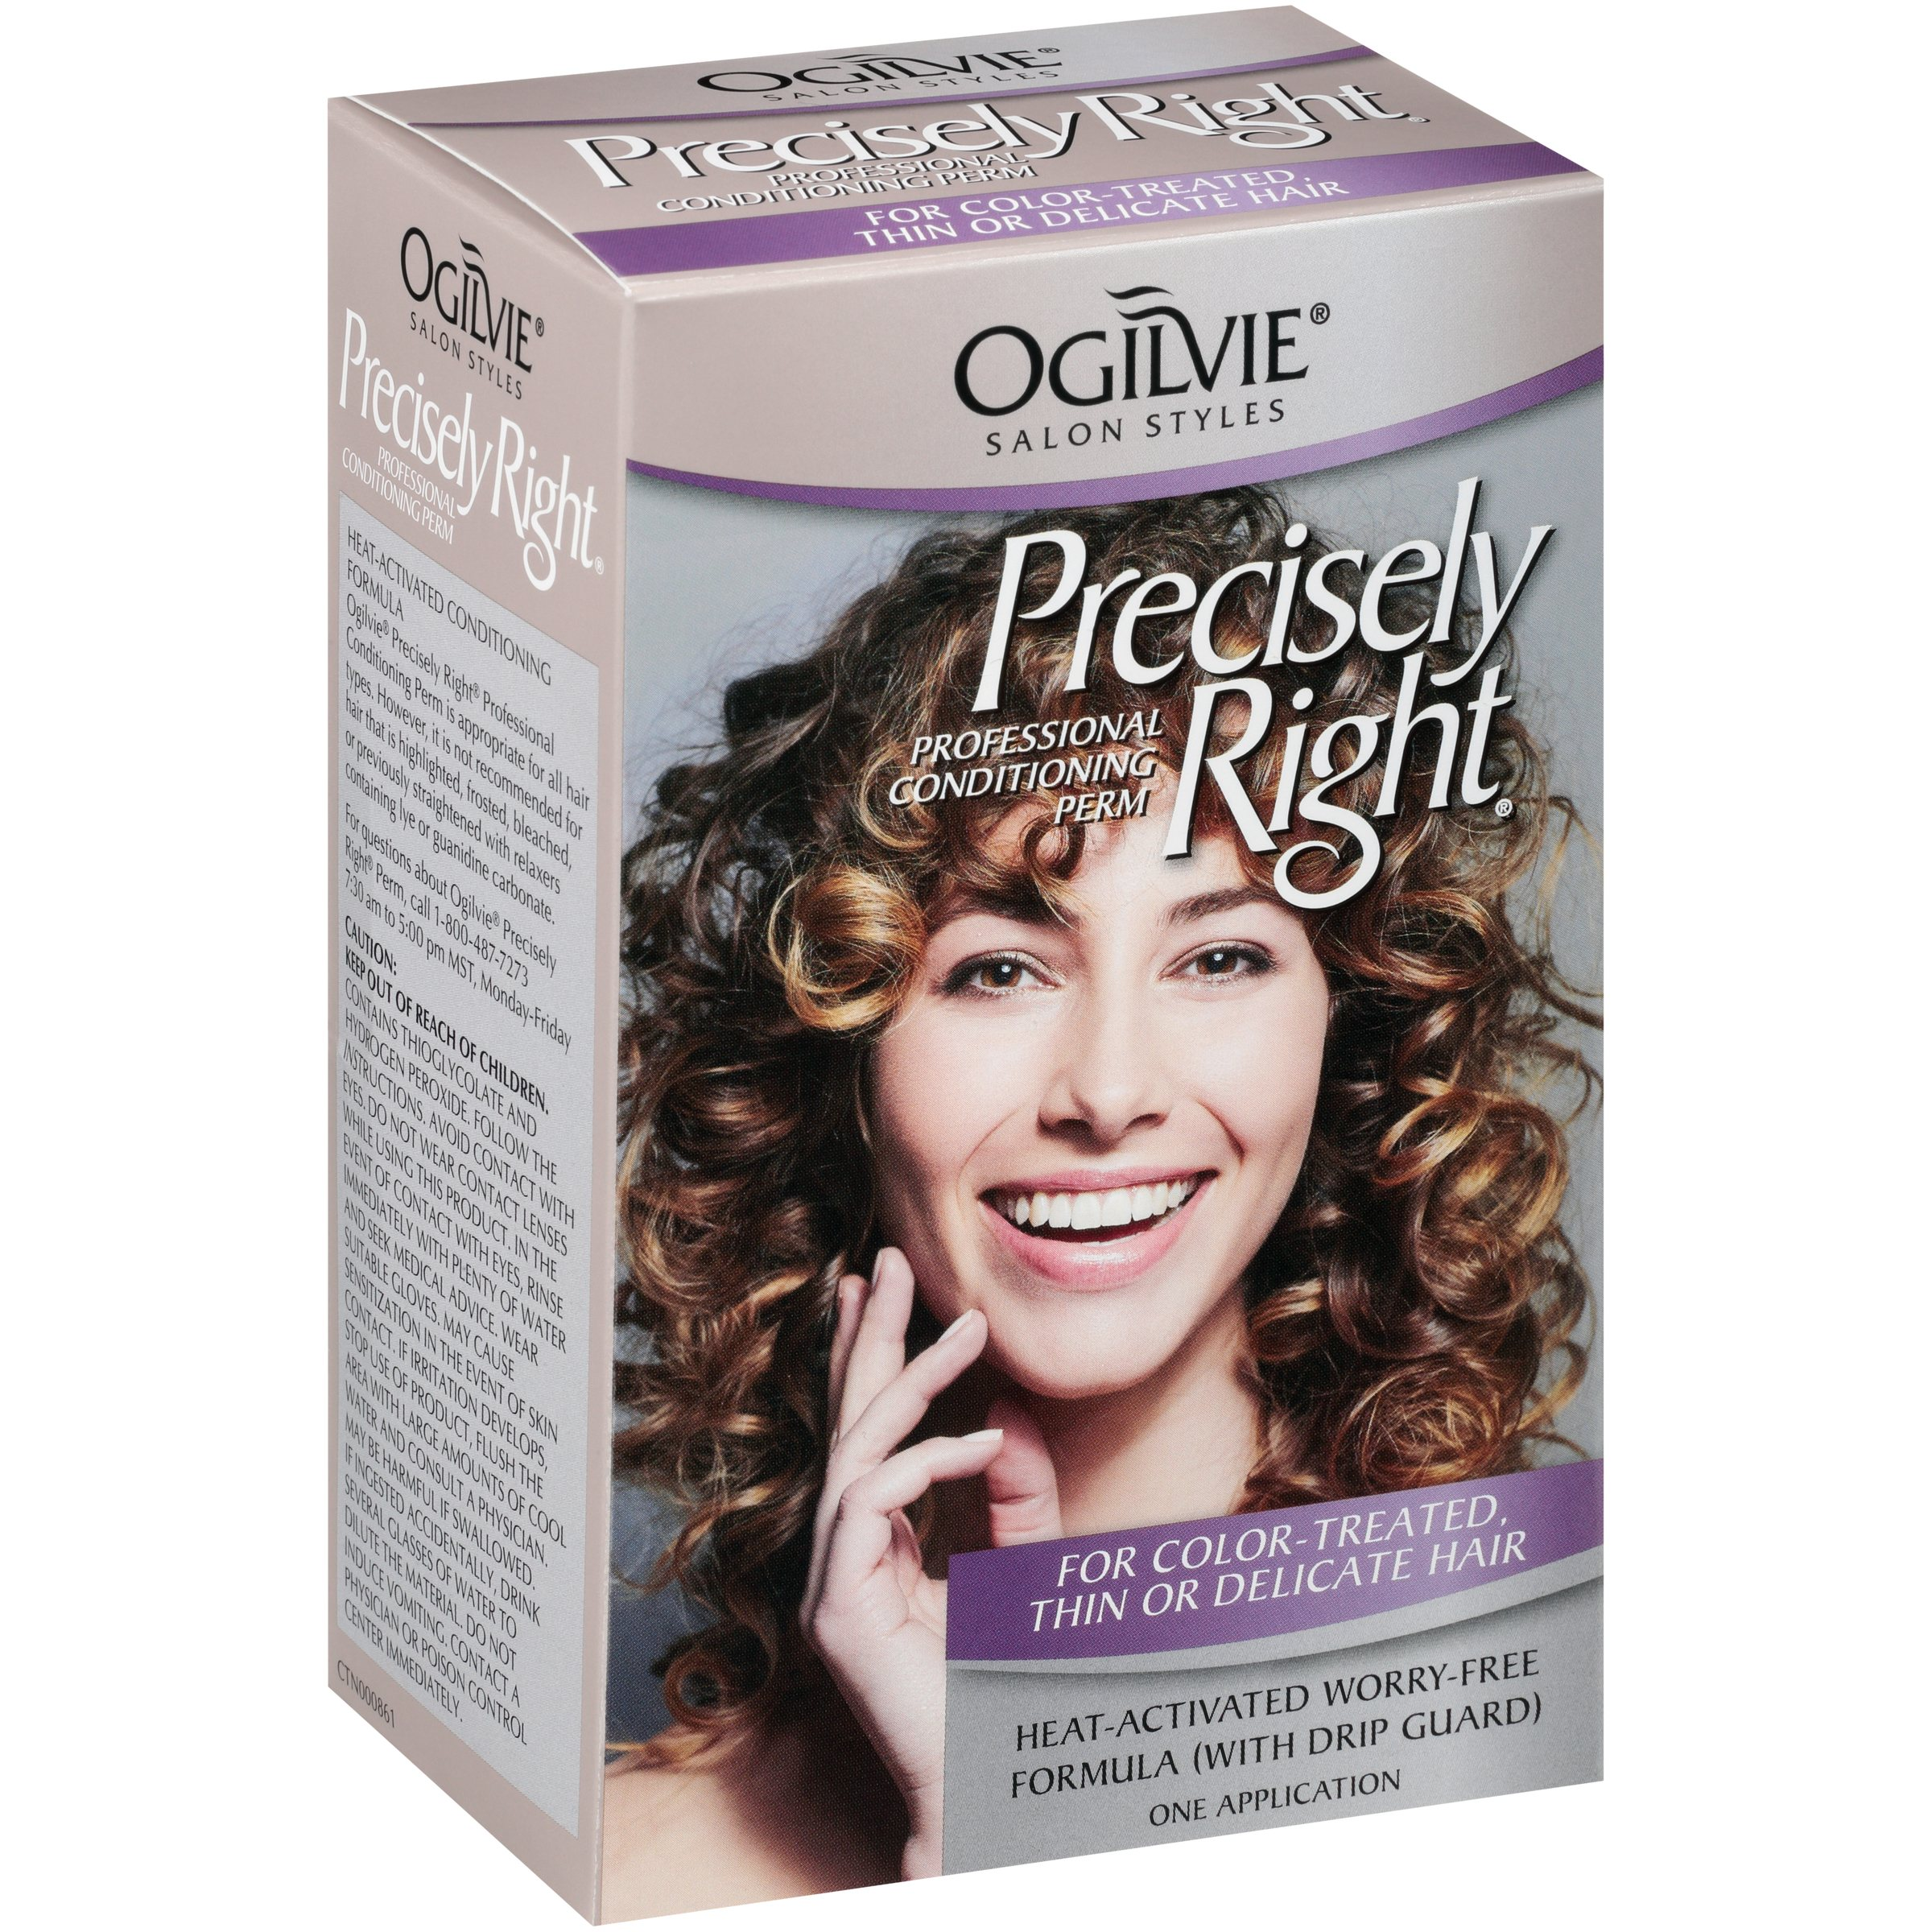 Ogilvie Salon Styles Professional Conditioning Perm For Color-Treated Thin Or Delicate Hair Precisely Right 1 Ct Box